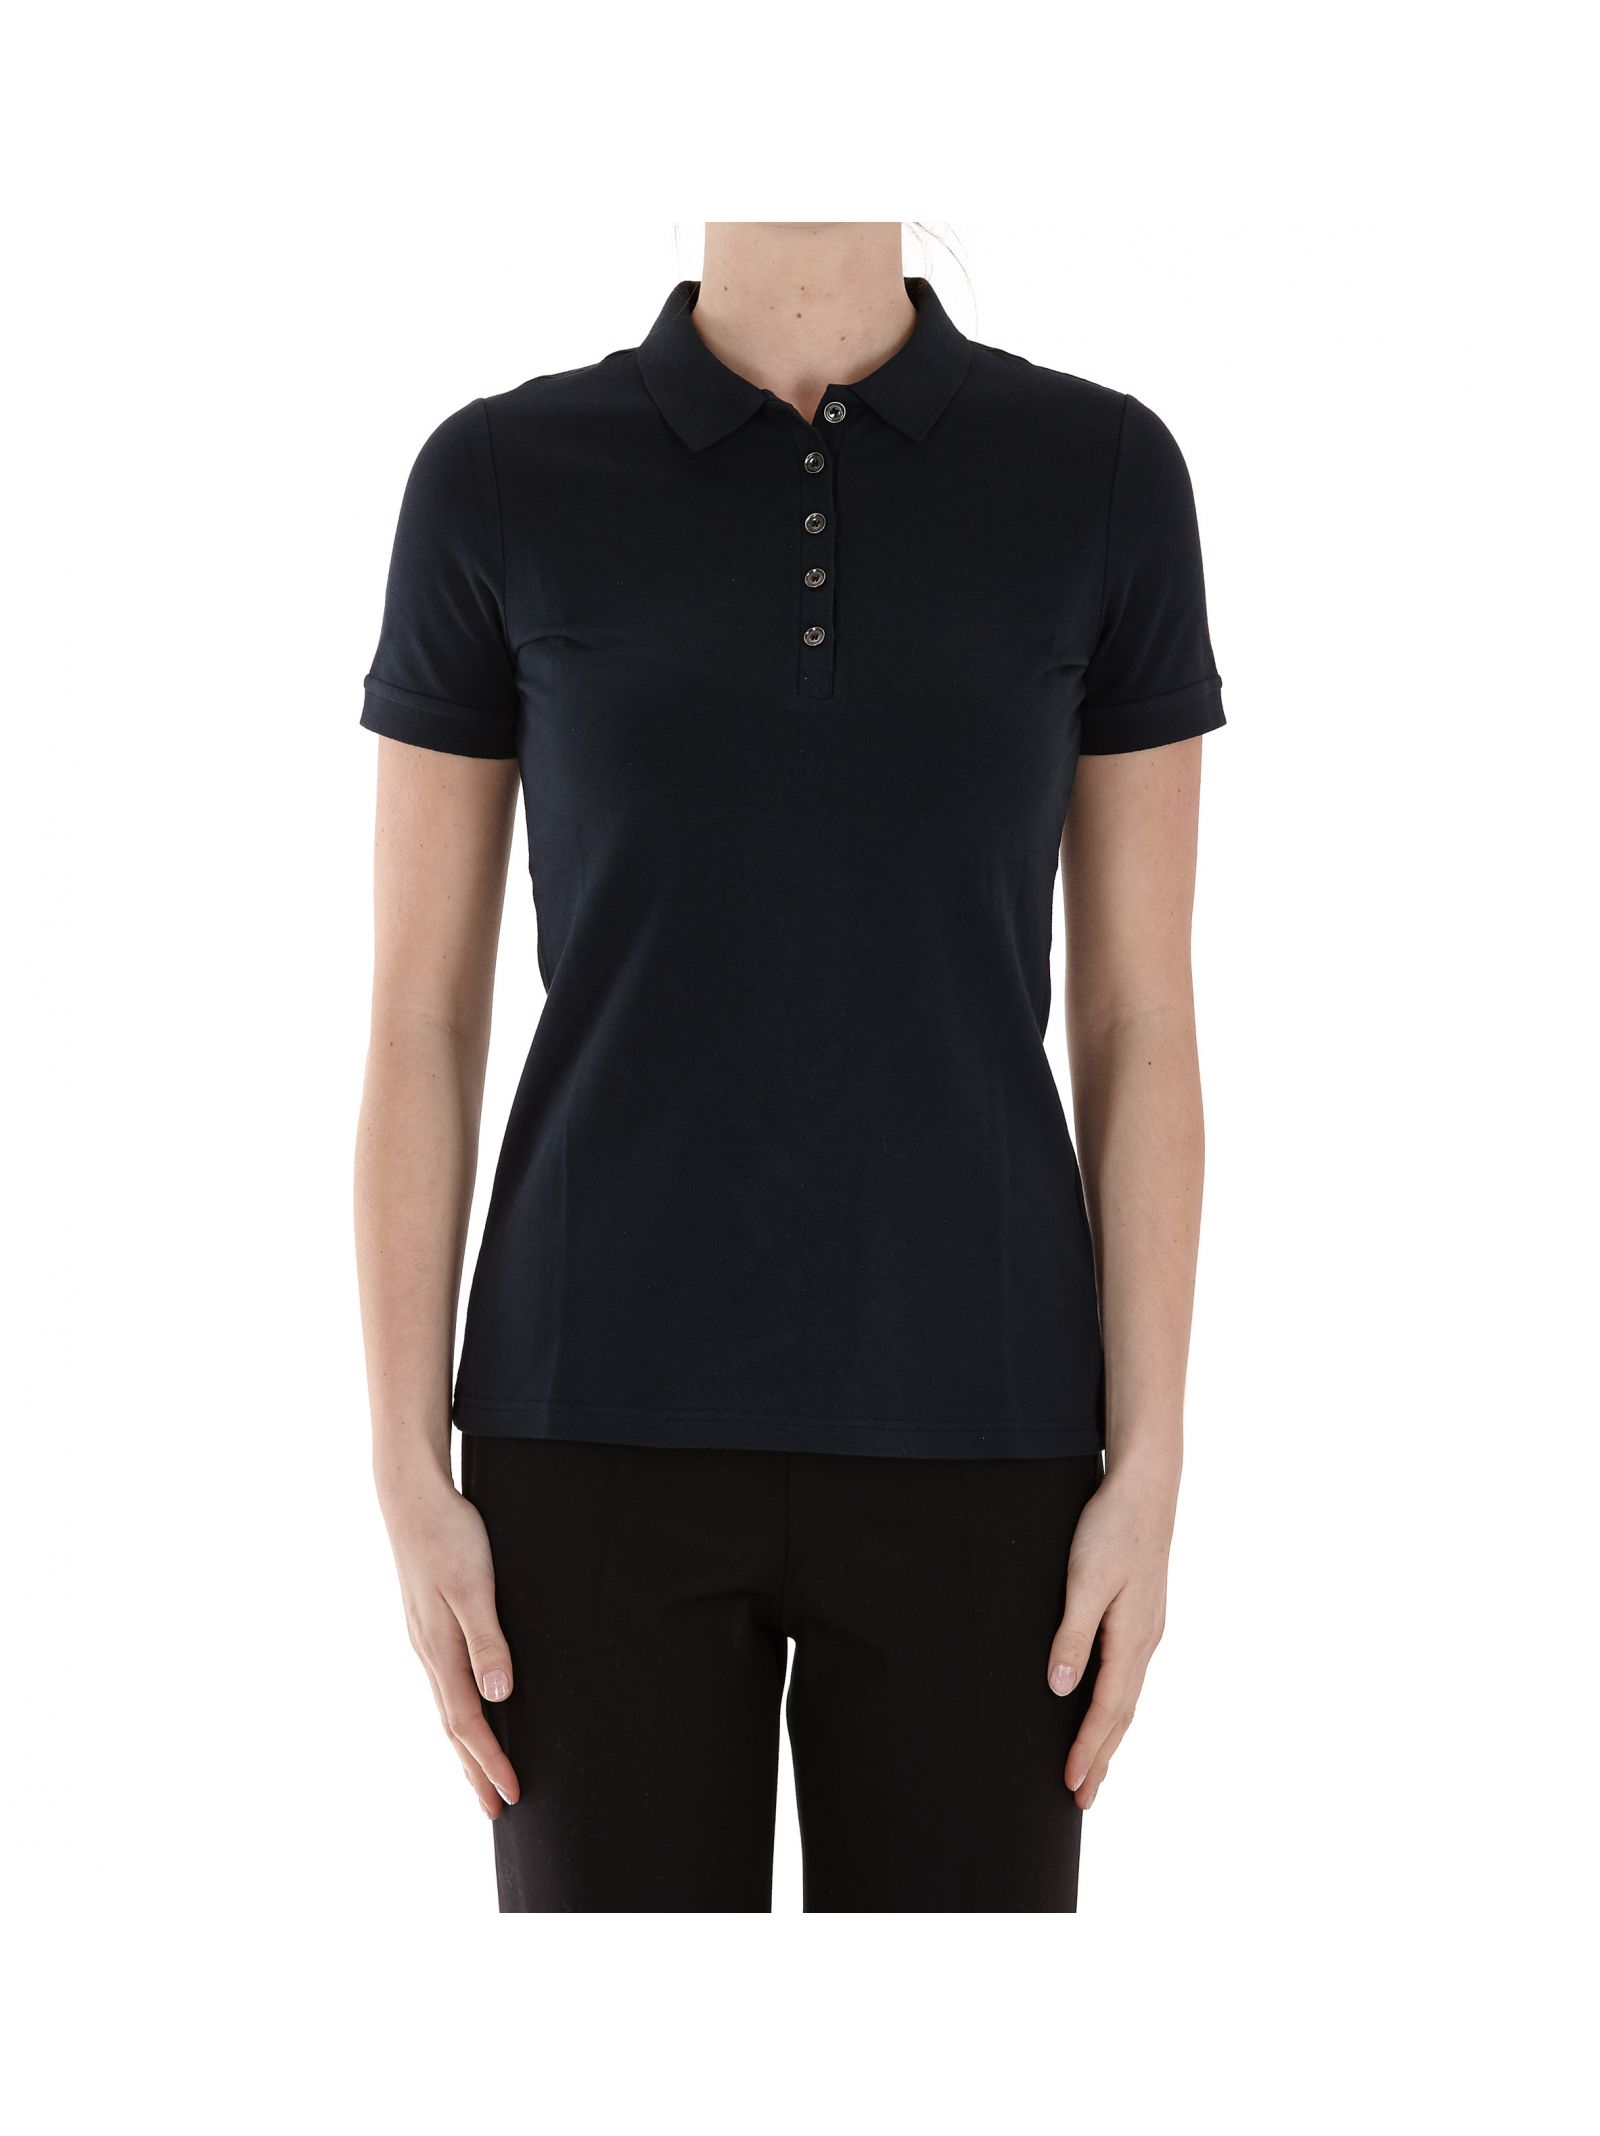 burberry female burberry polo tshirt